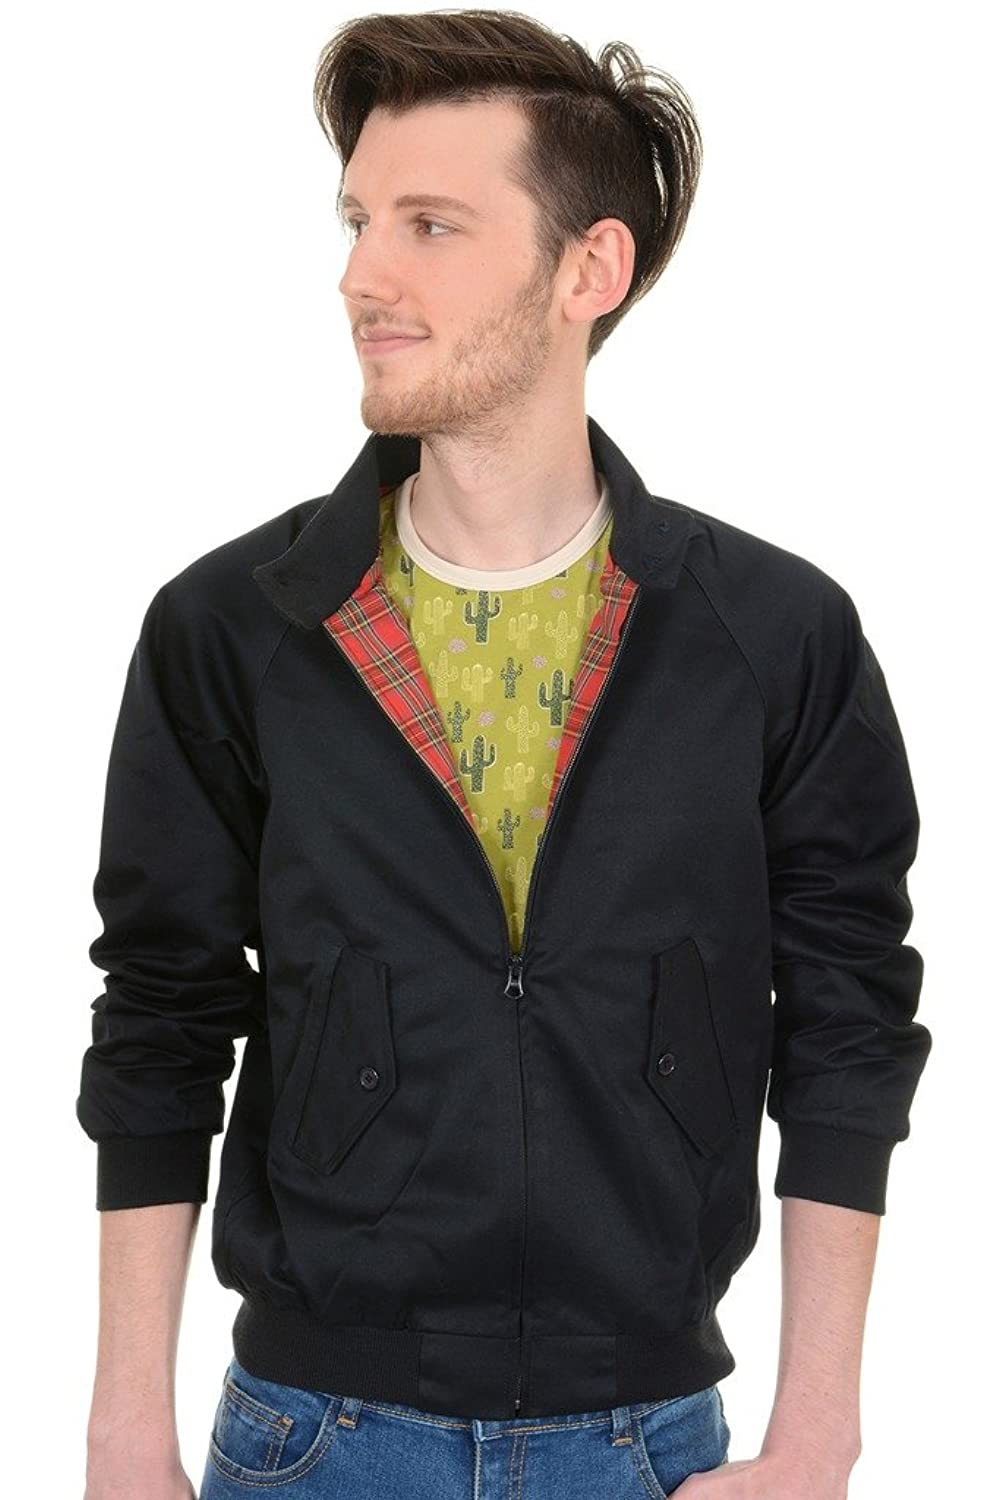 Retro Clothing for Men | Vintage Men's Fashion Mens Run & Fly 60s Retro Mod Navy Harrington Jacket $49.95 AT vintagedancer.com